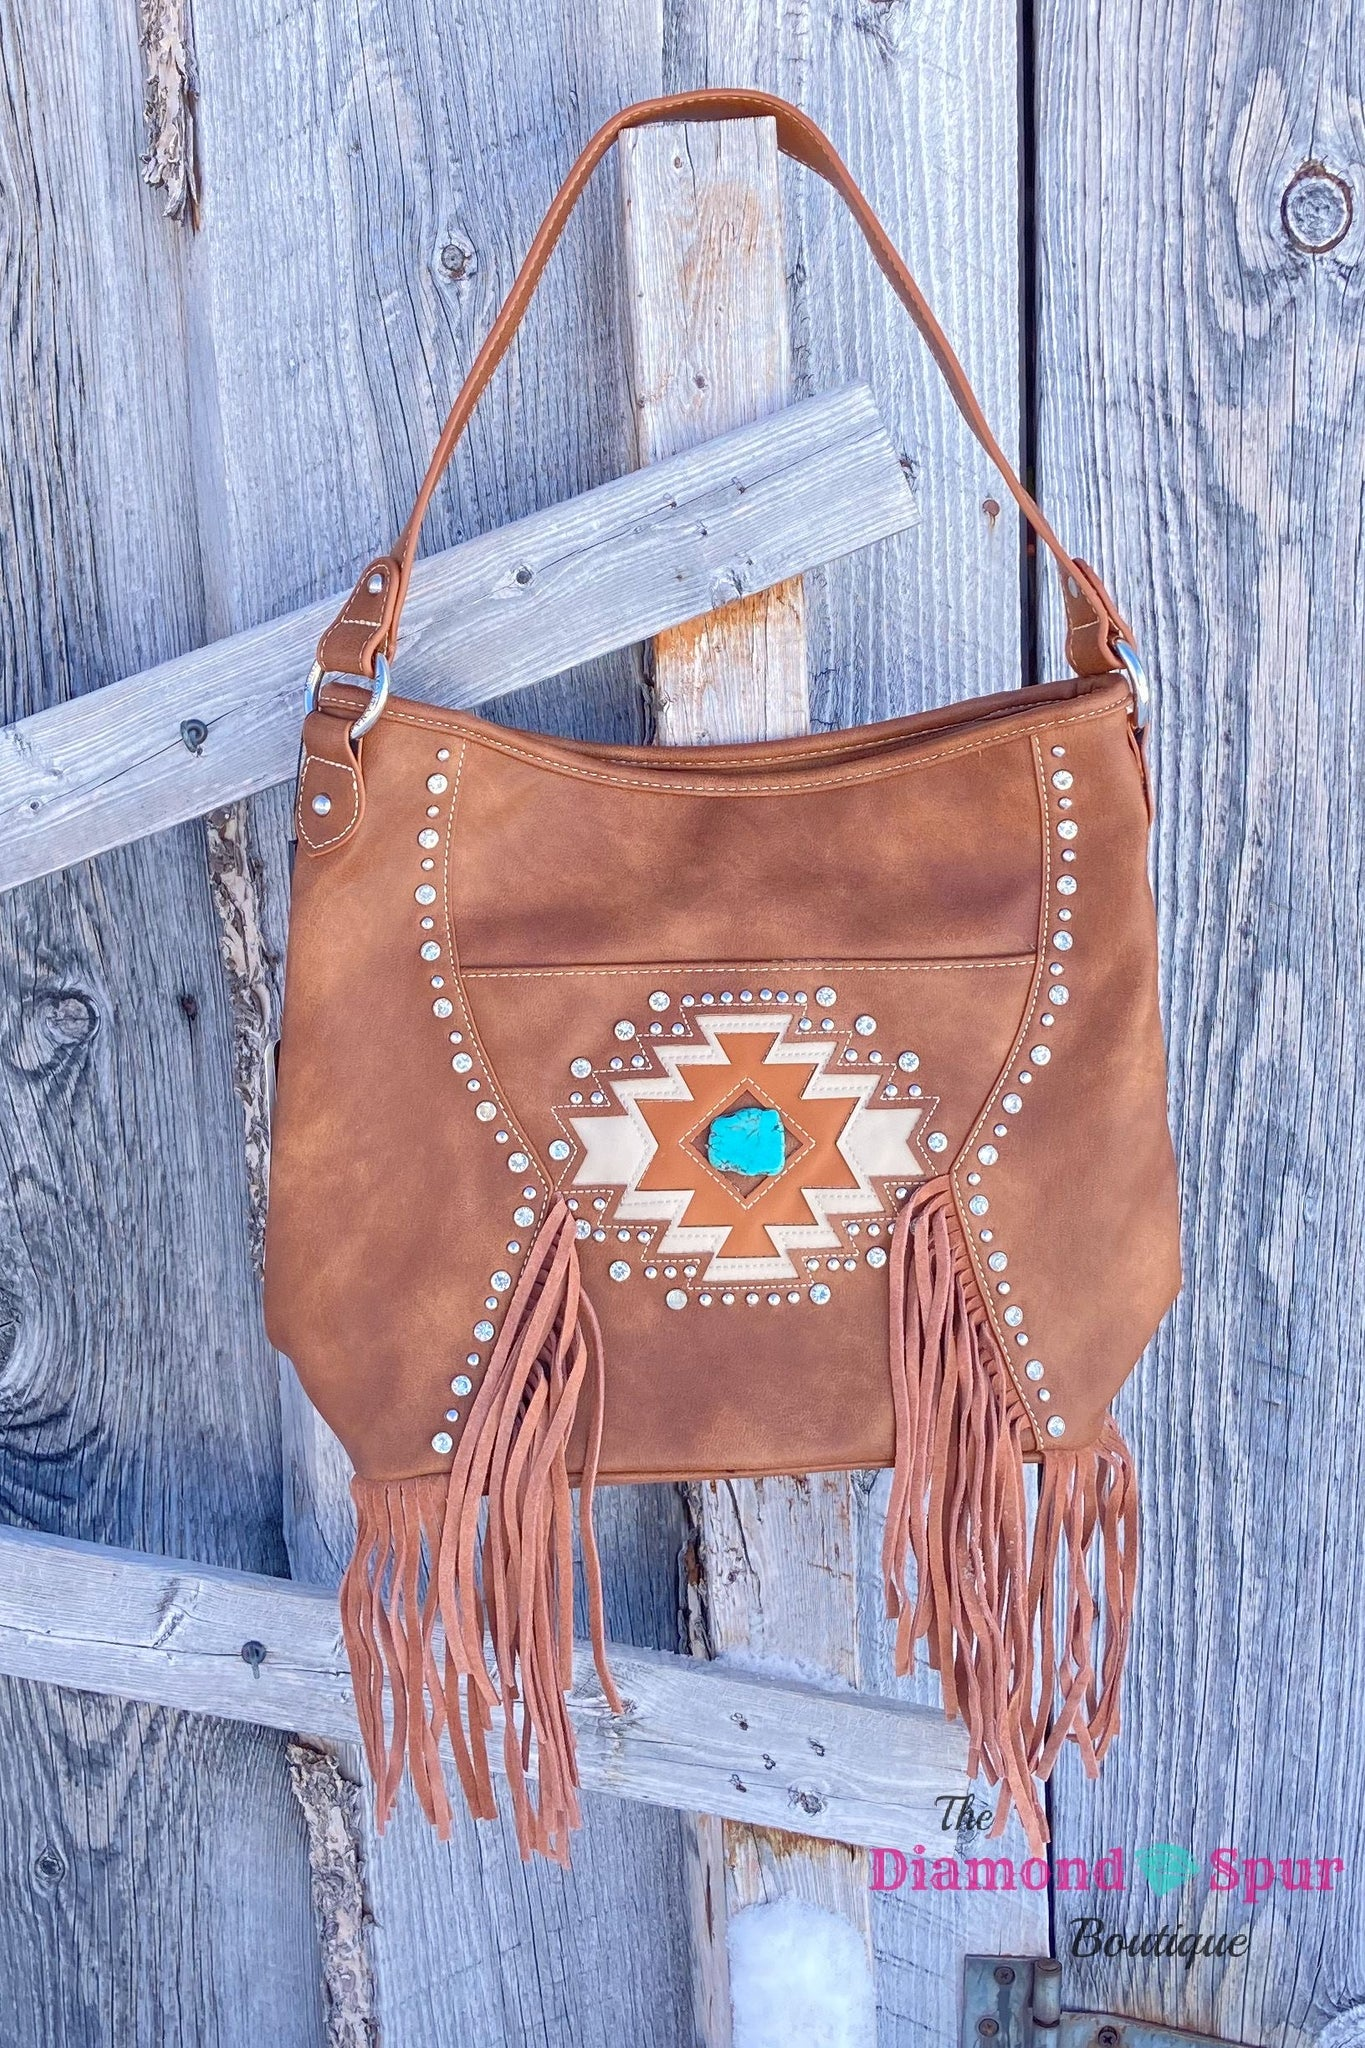 Fringe and Turquoise Detail Concealed Carry Handbag - The Diamond Spur Boutique